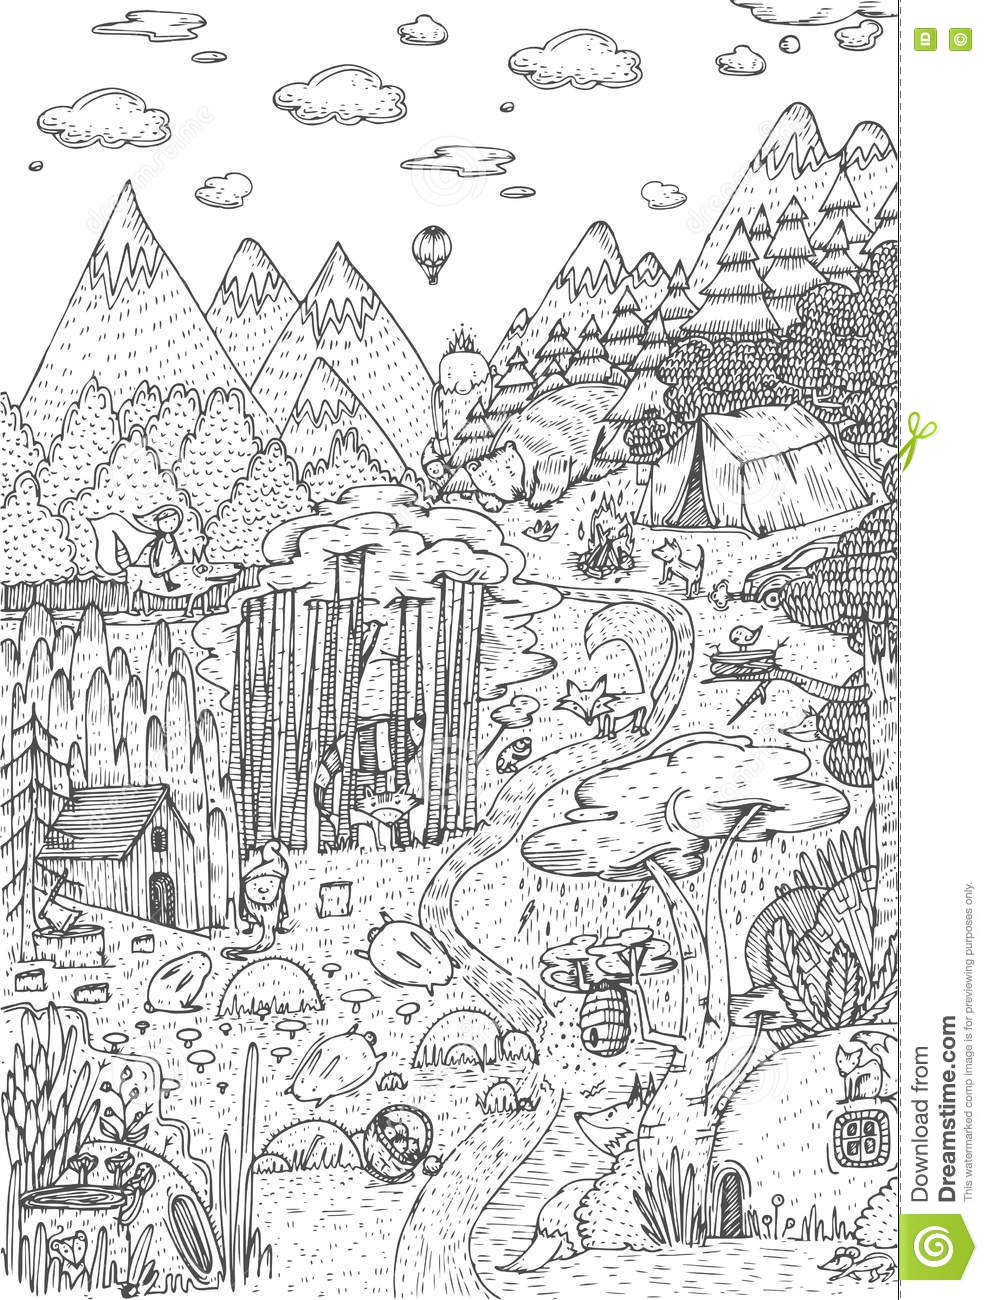 Royalty Free Vector Download Wild Life In Forest Drawn Line Art Style Coloring Book